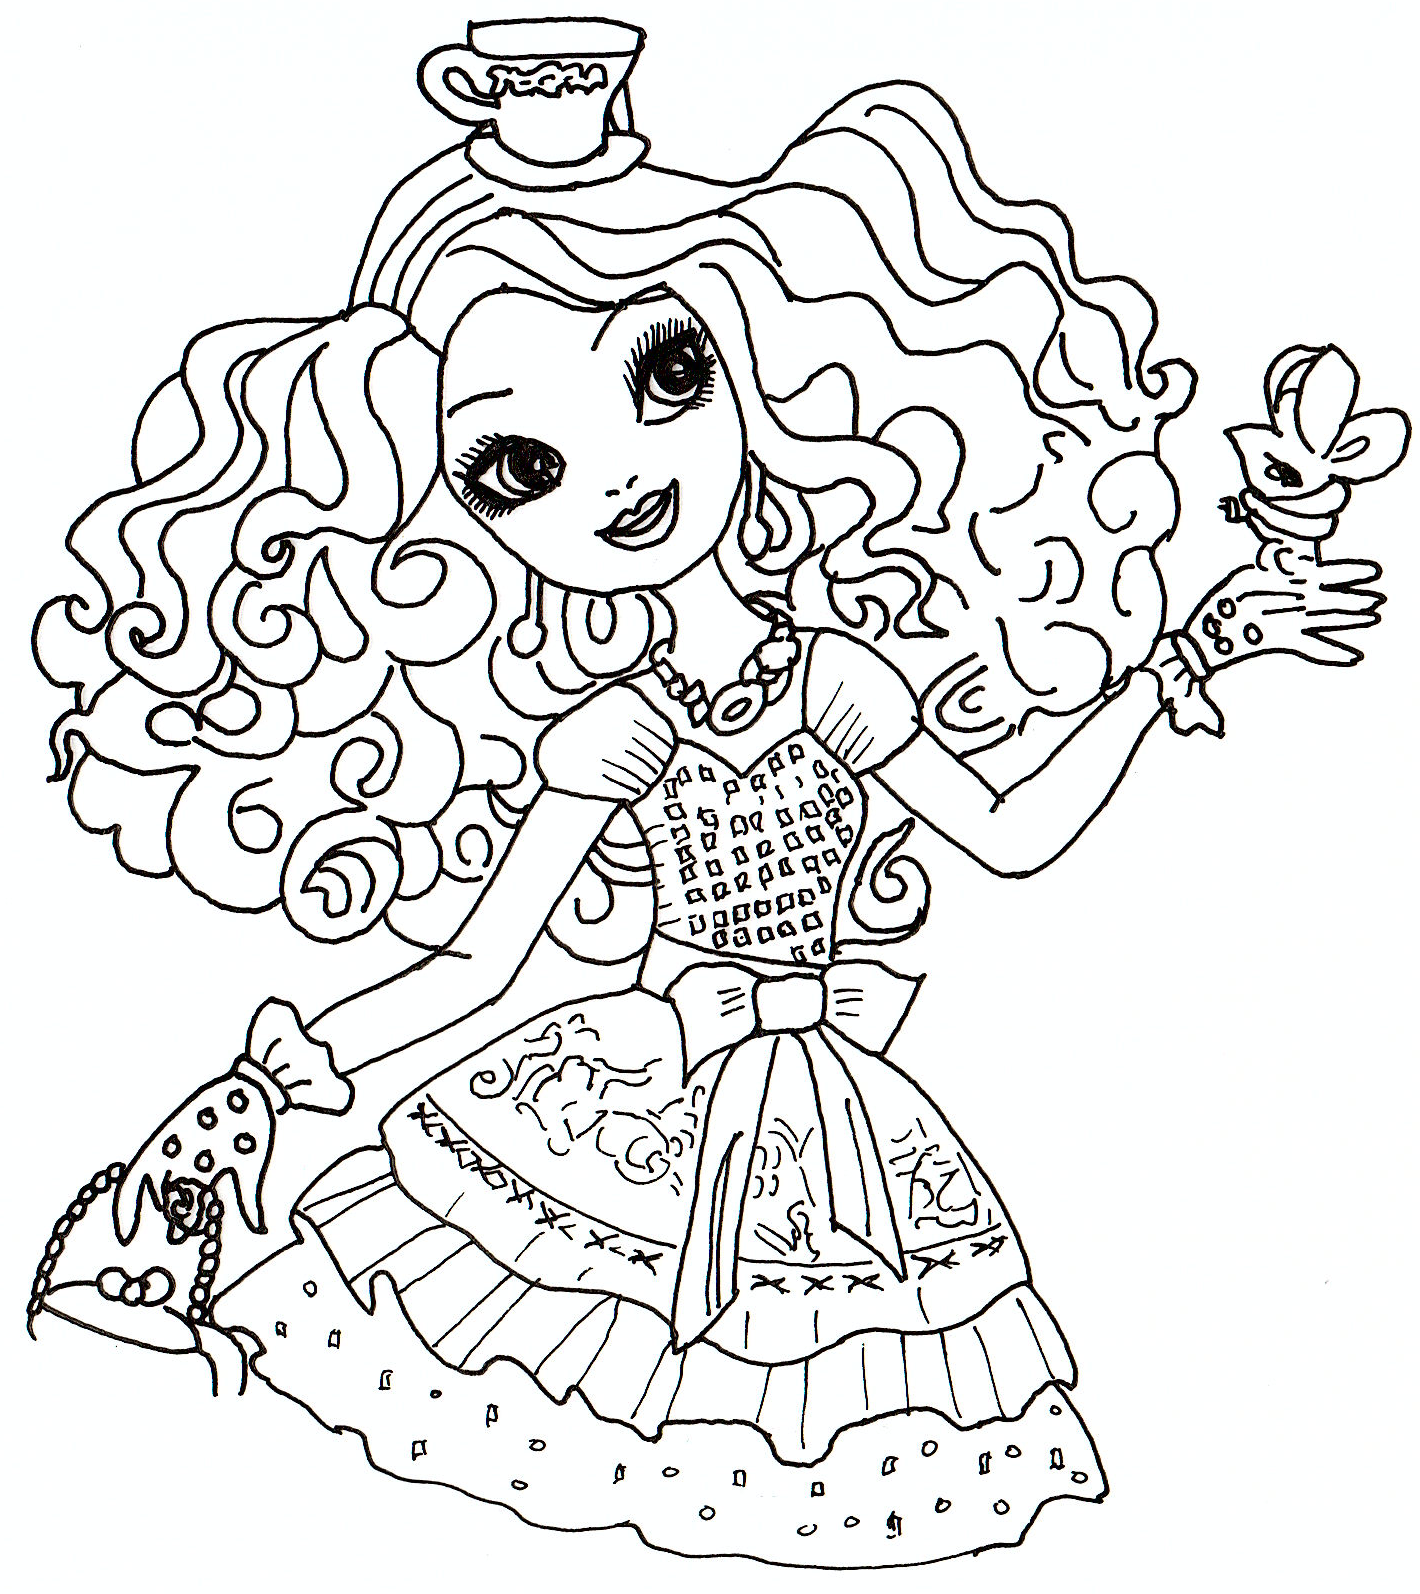 Printable coloring pages ever after high - Free Printable Ever After High Coloring Sheet For Madeline Hatter